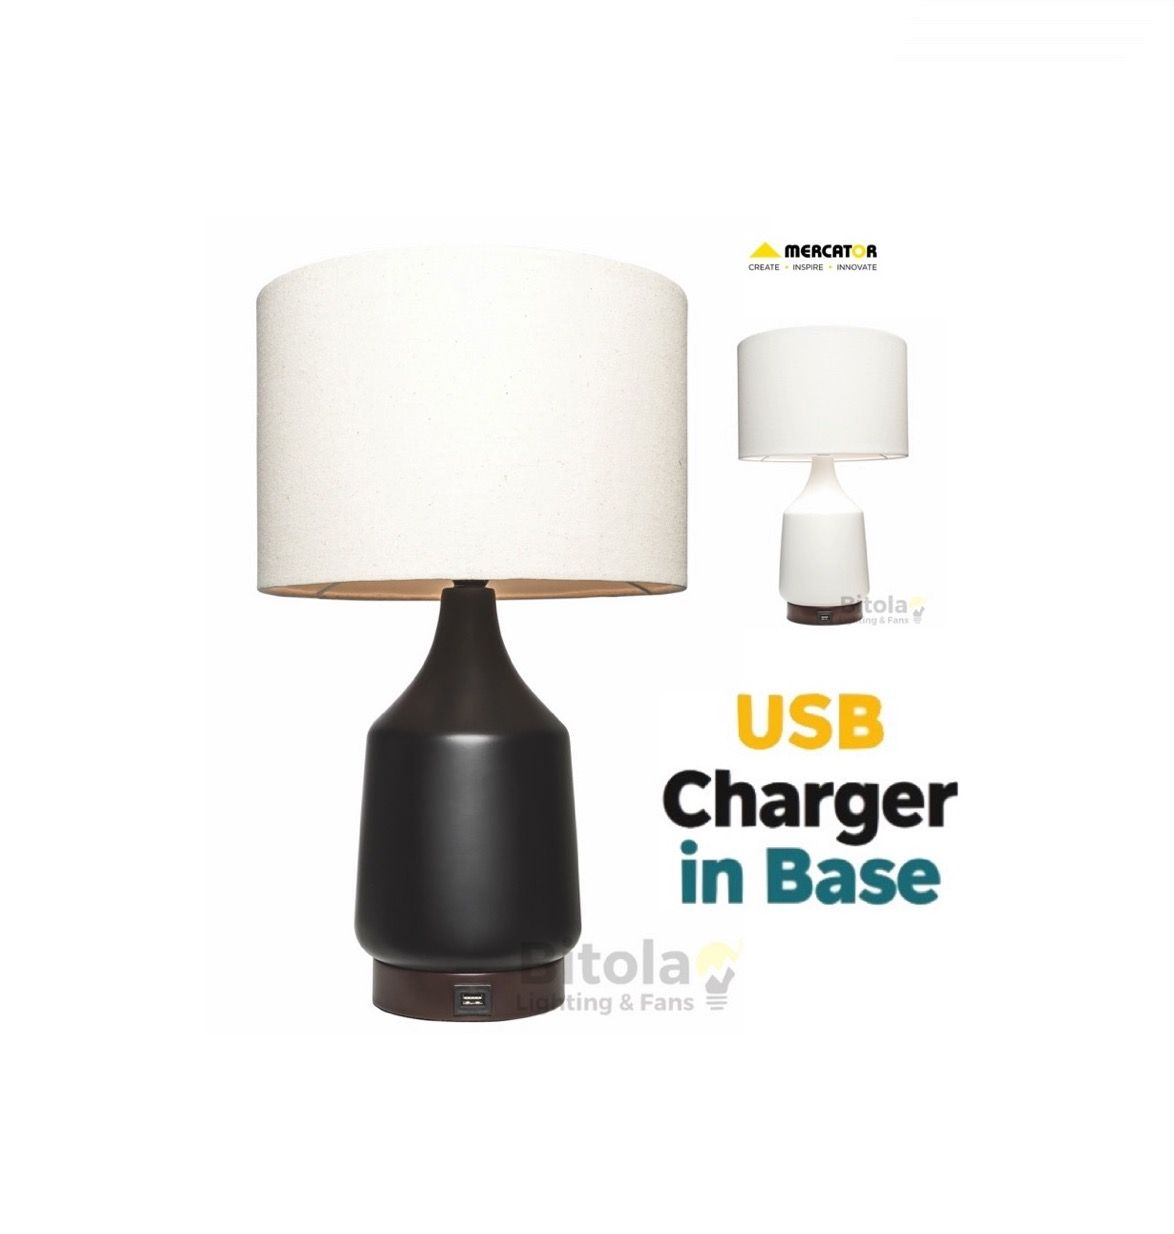 Santos+Table+Lamp+with+USB+Charging+Port+-+Mercator+A62711